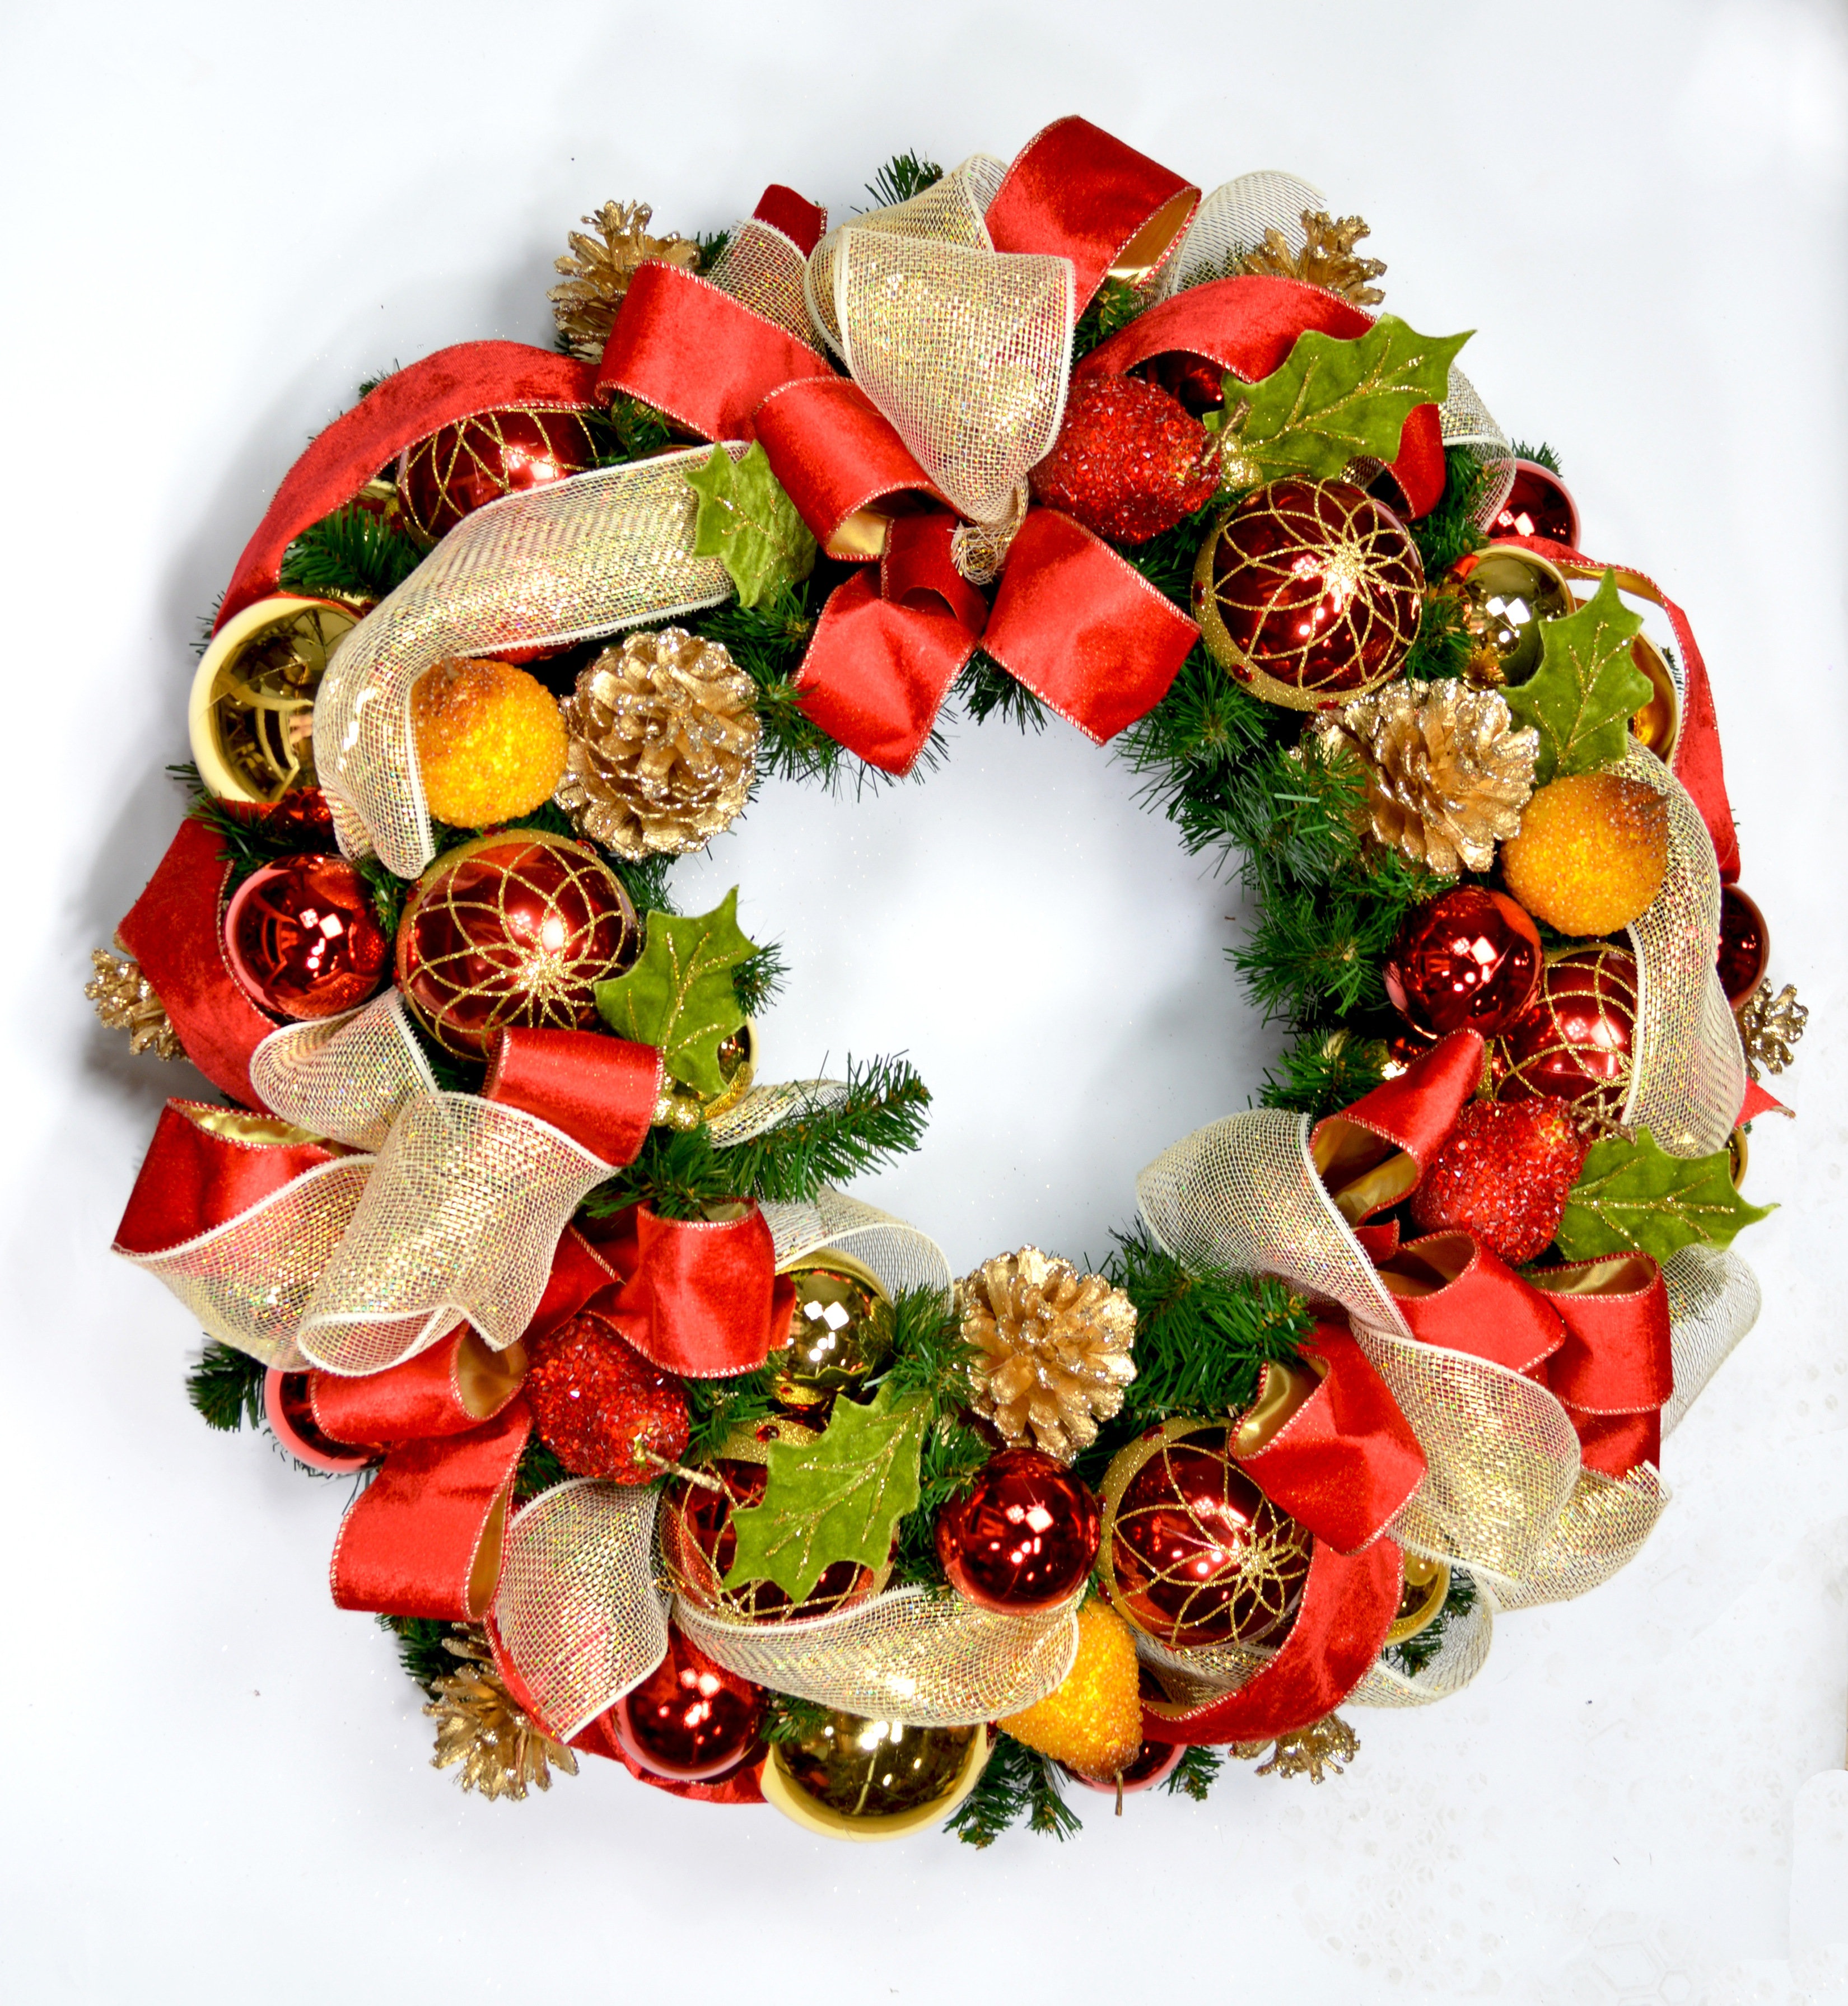 cdwr624 red and gold christmas wreath with pears